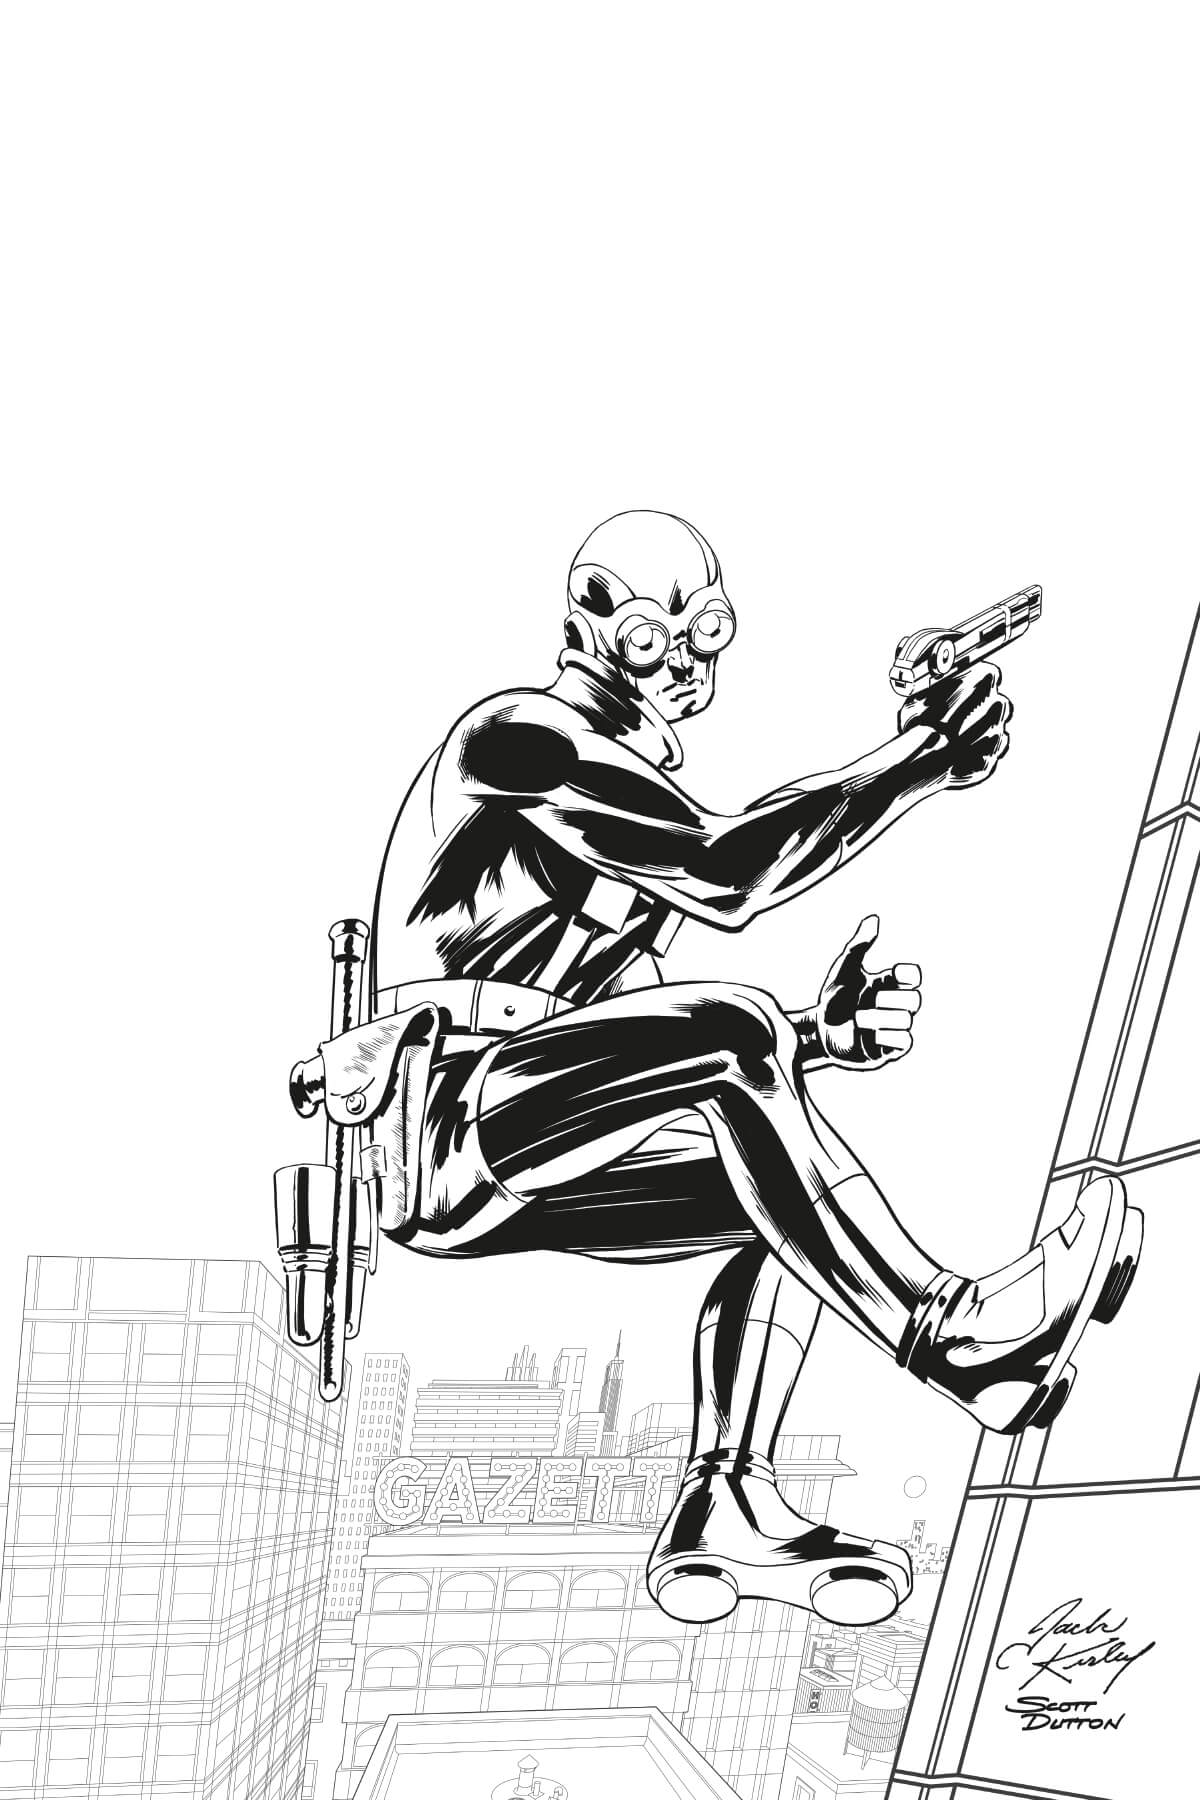 Inking by Scott Dutton